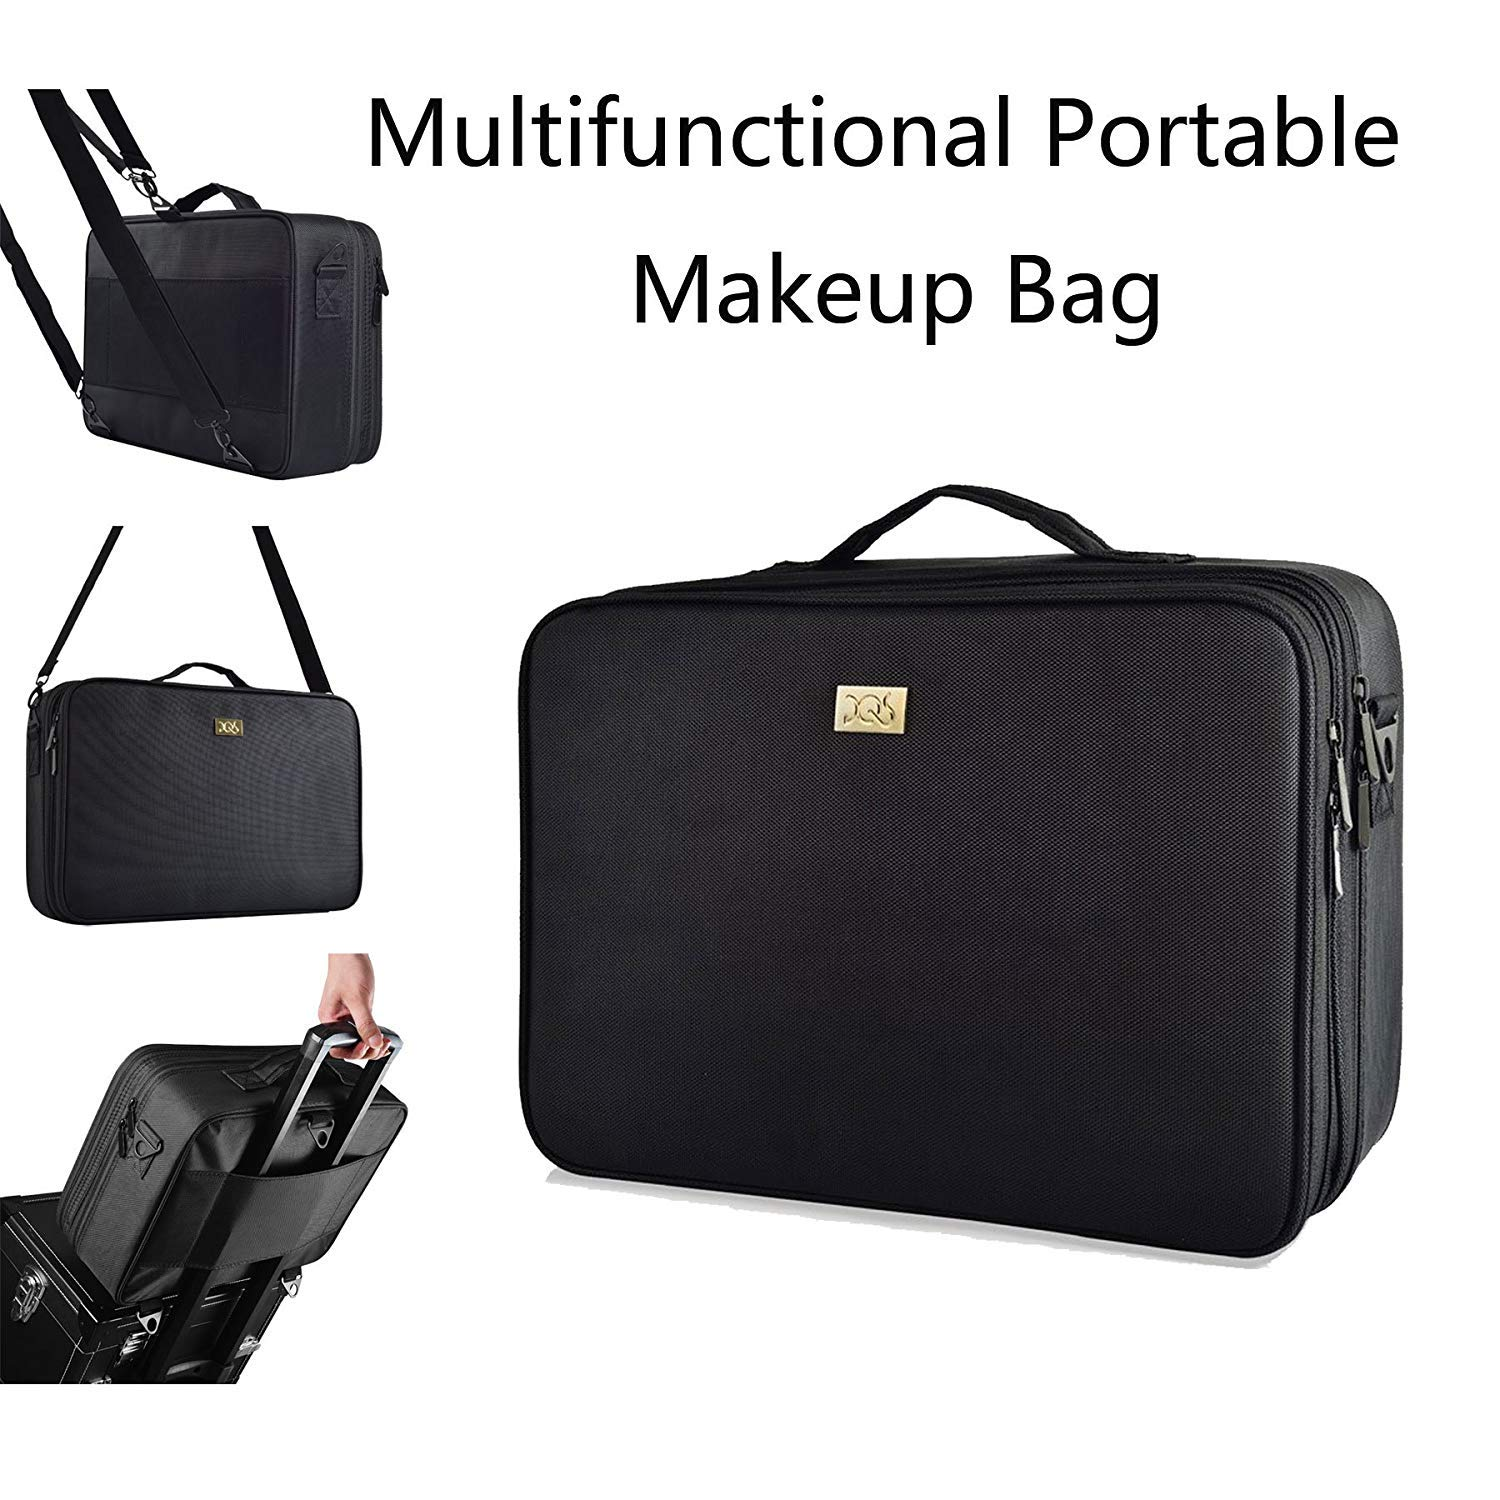 DQS Makeup Train Case, 3 Layer 15.2'' Length Portable Travel Makeup Bag Cosmetic Organizer with 2 Shoulder Strapes, Black (15.16''×10.63''×5.31'')